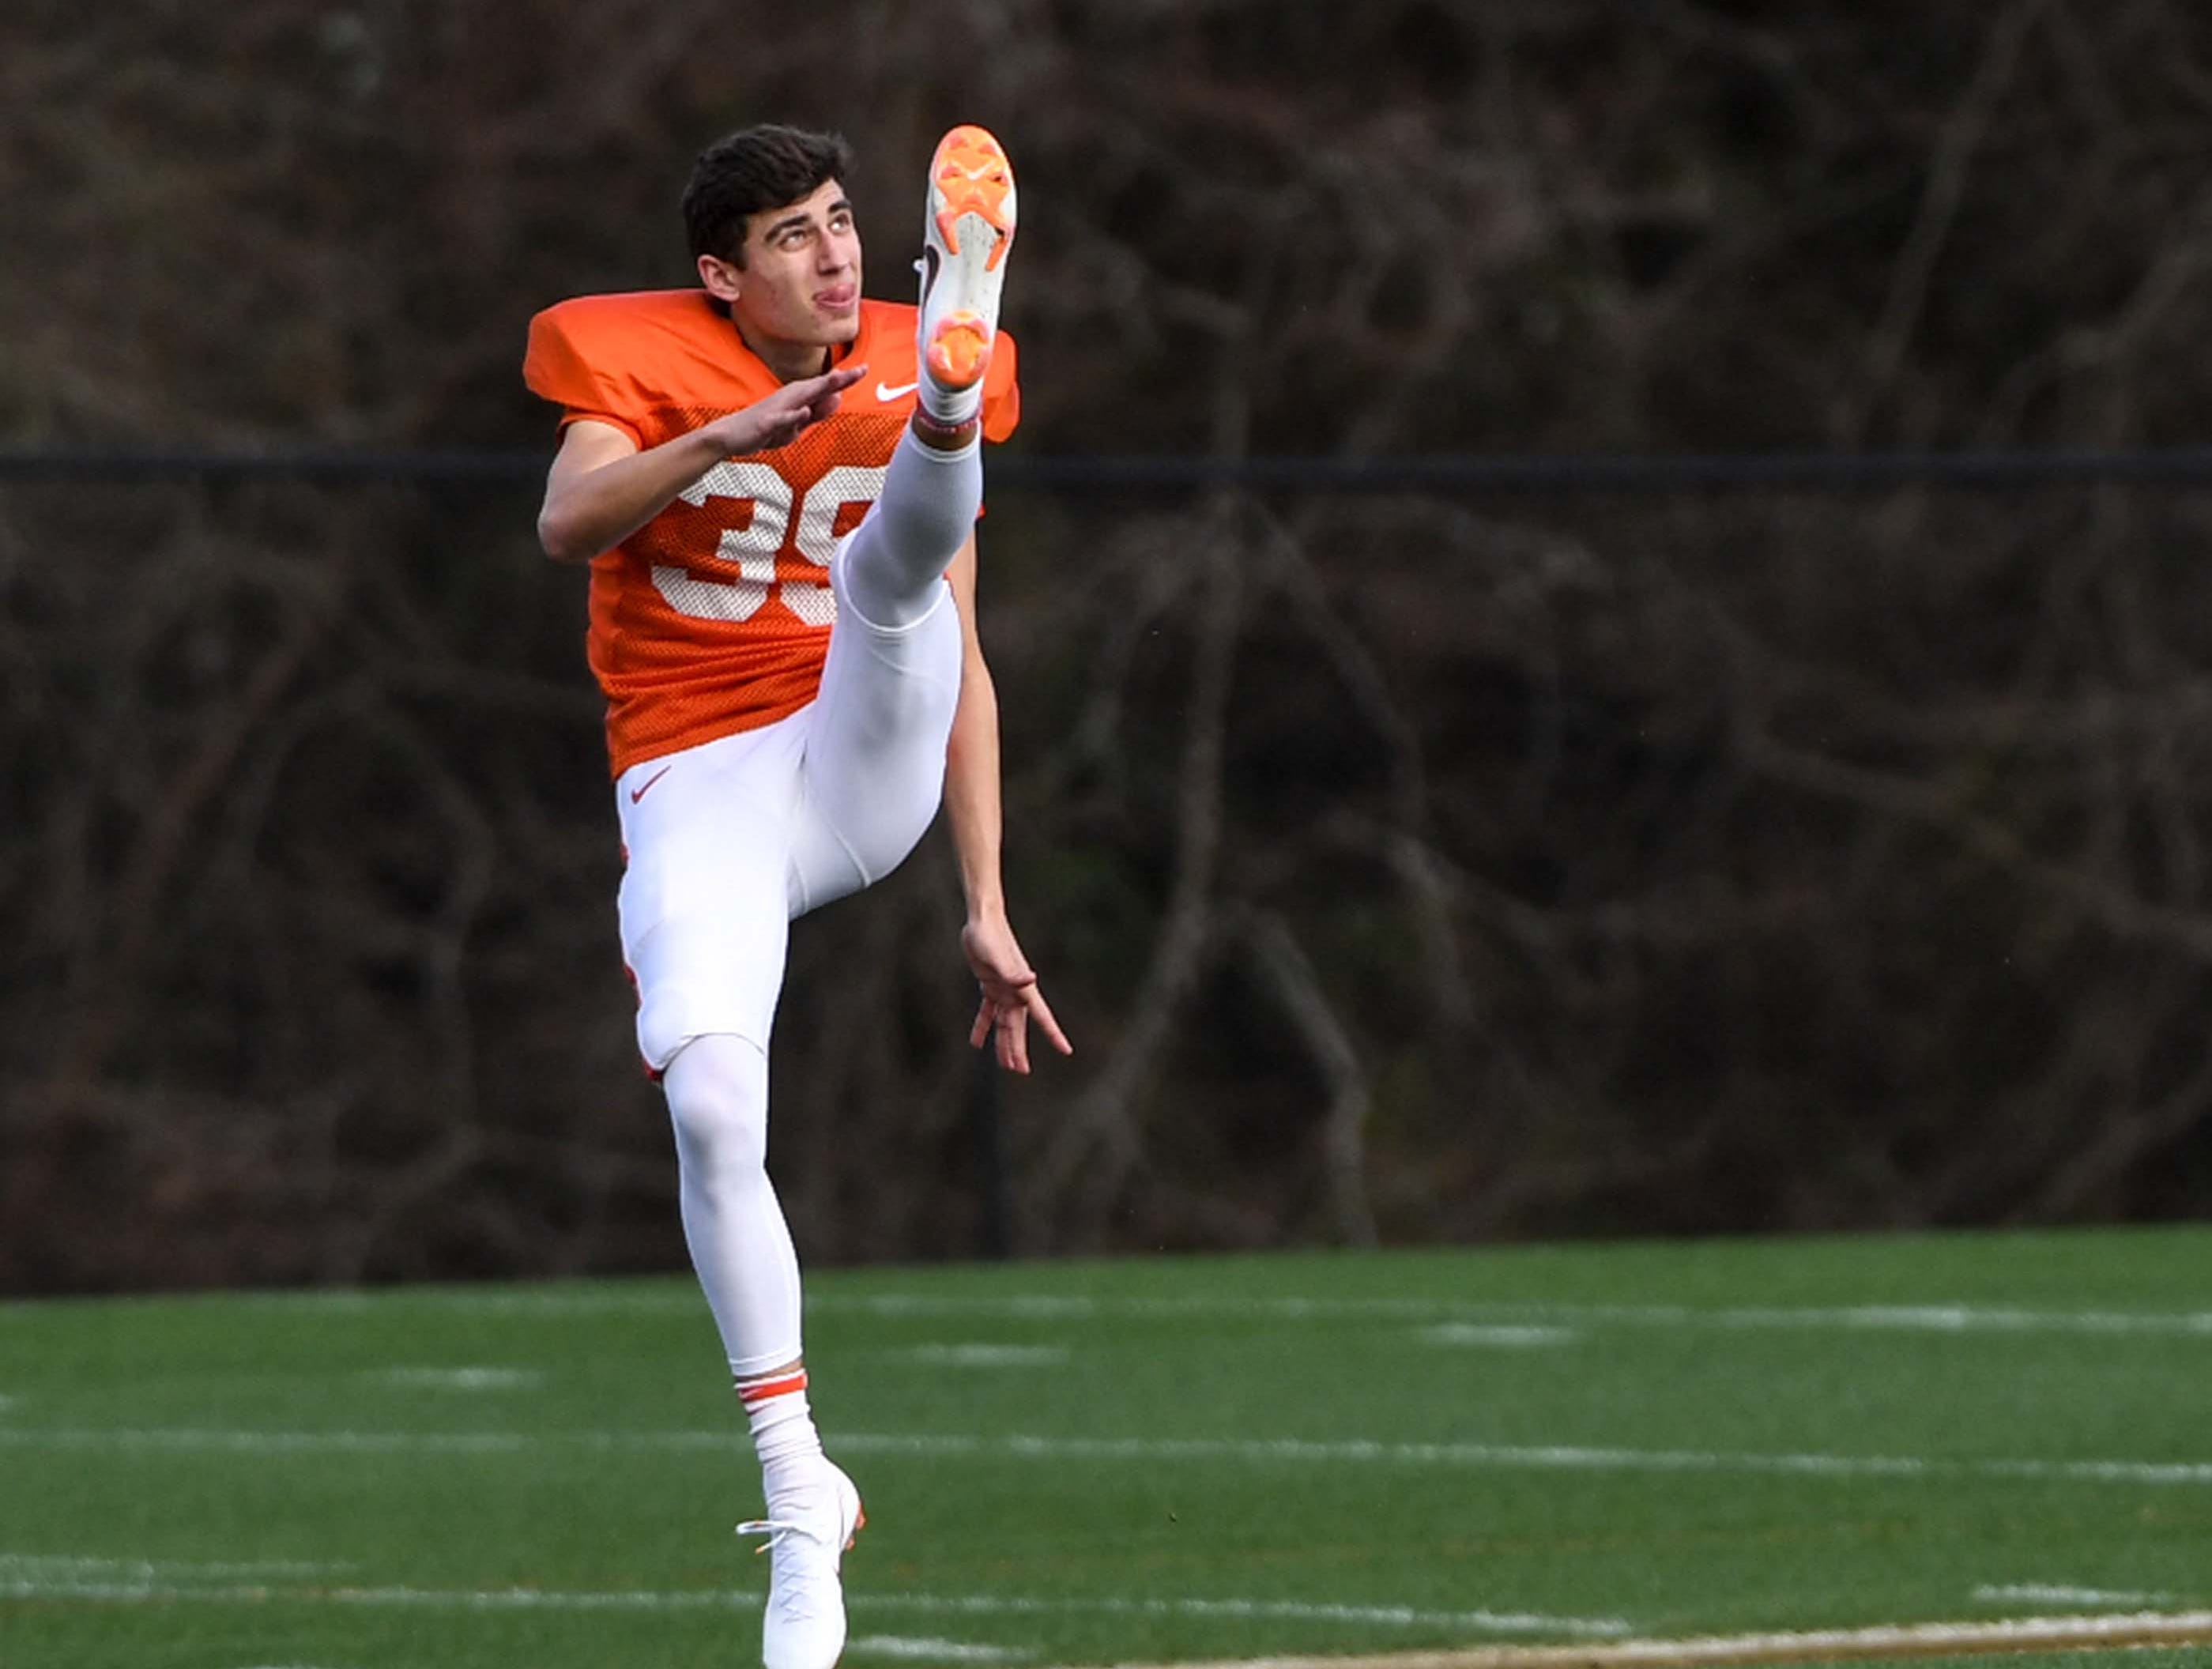 Clemson punter Aidan Swanson(39) punts during practice at the Poe Indoor Facility in Clemson Monday.